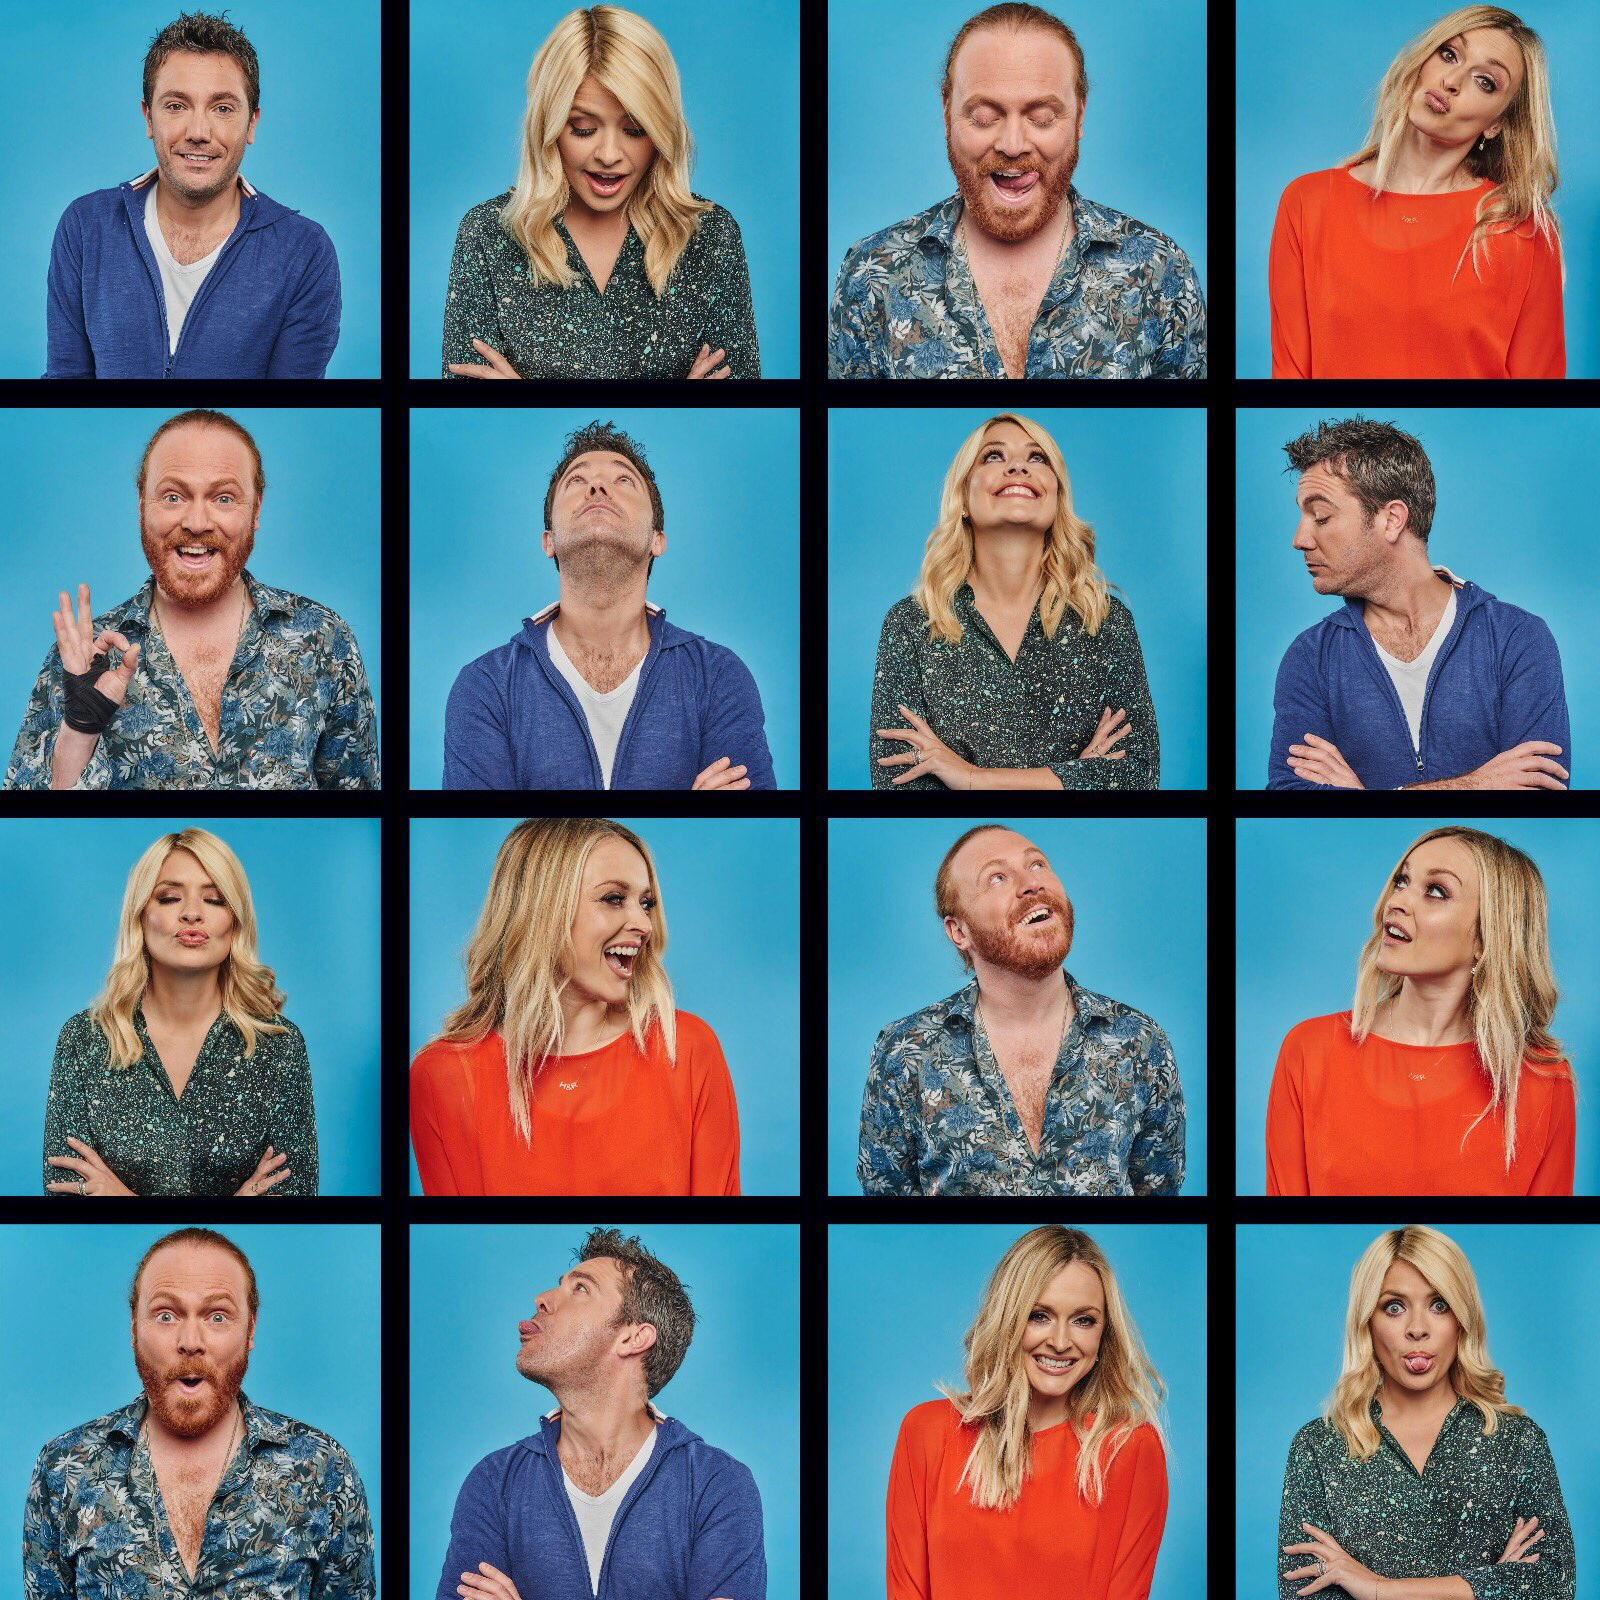 Say hello to the juicy bunch! 🍋 @CelebJuice back on your screens 14th September at 10pm on @ITV2 #CelebJuice x https://t.co/79LI4mnYkG